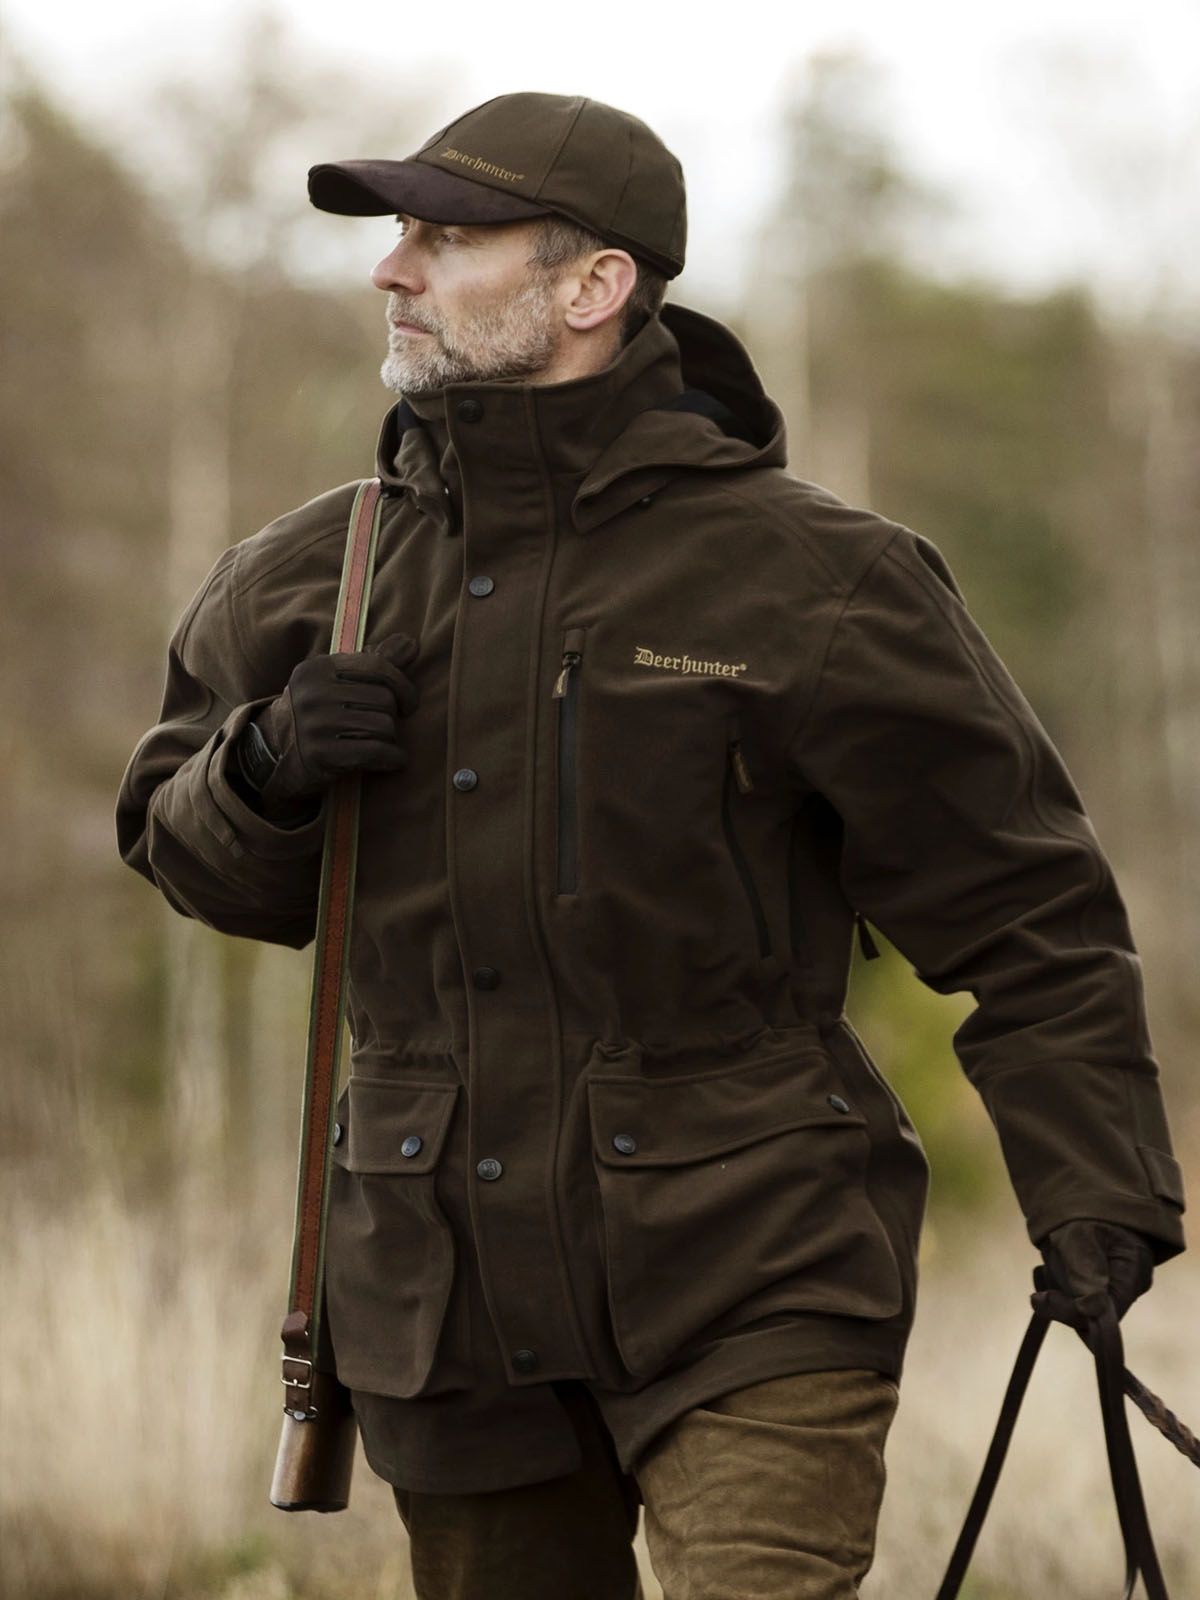 Deerhunter Pro Gamekeeper Hunting Jacket